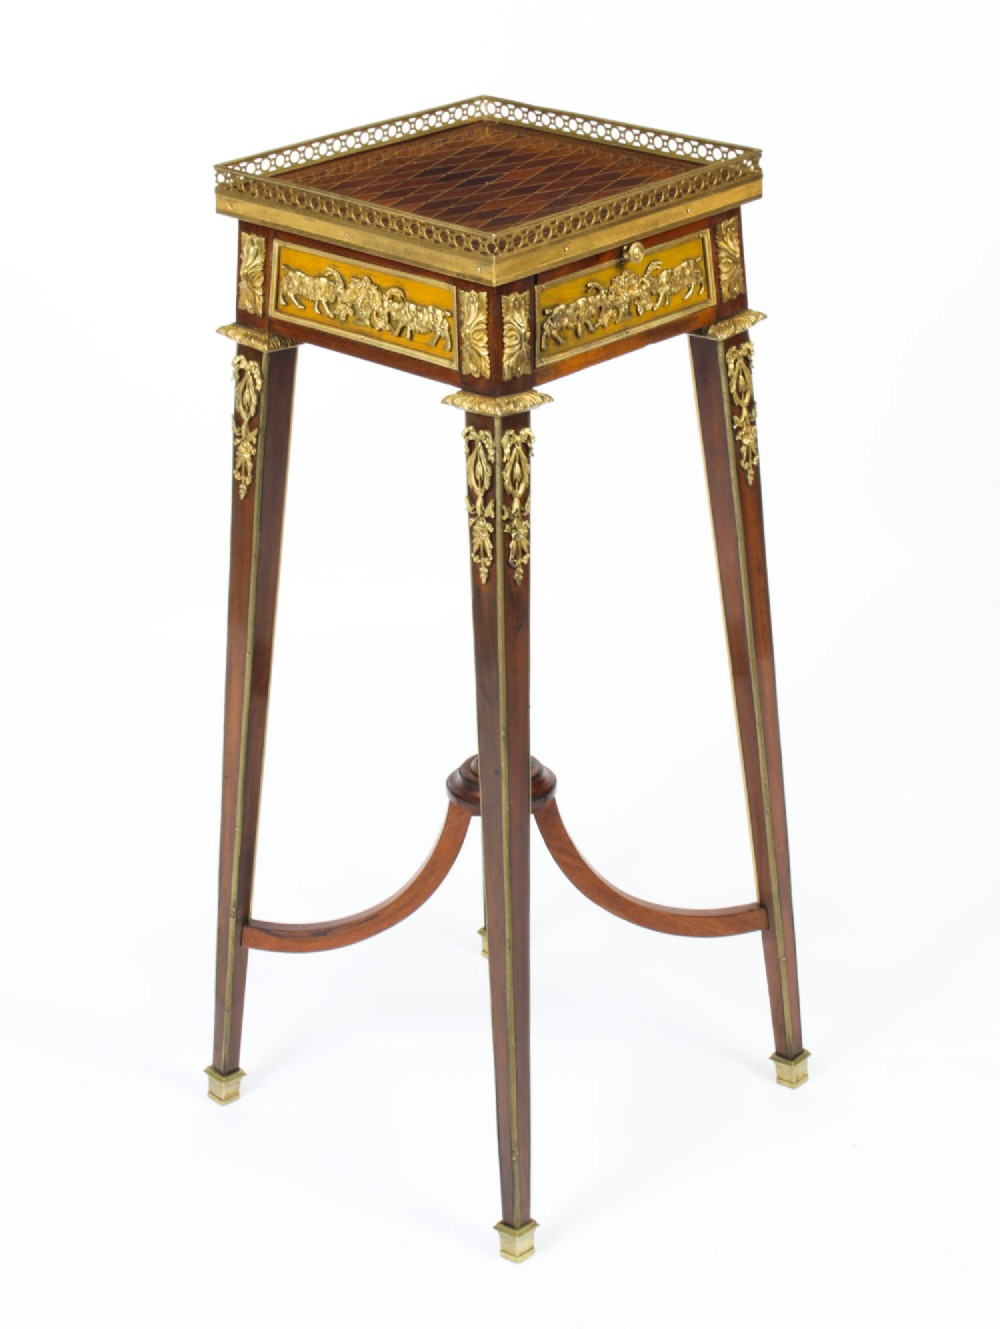 antique french parquetry ormolu mounted stand att franois linke 19th century